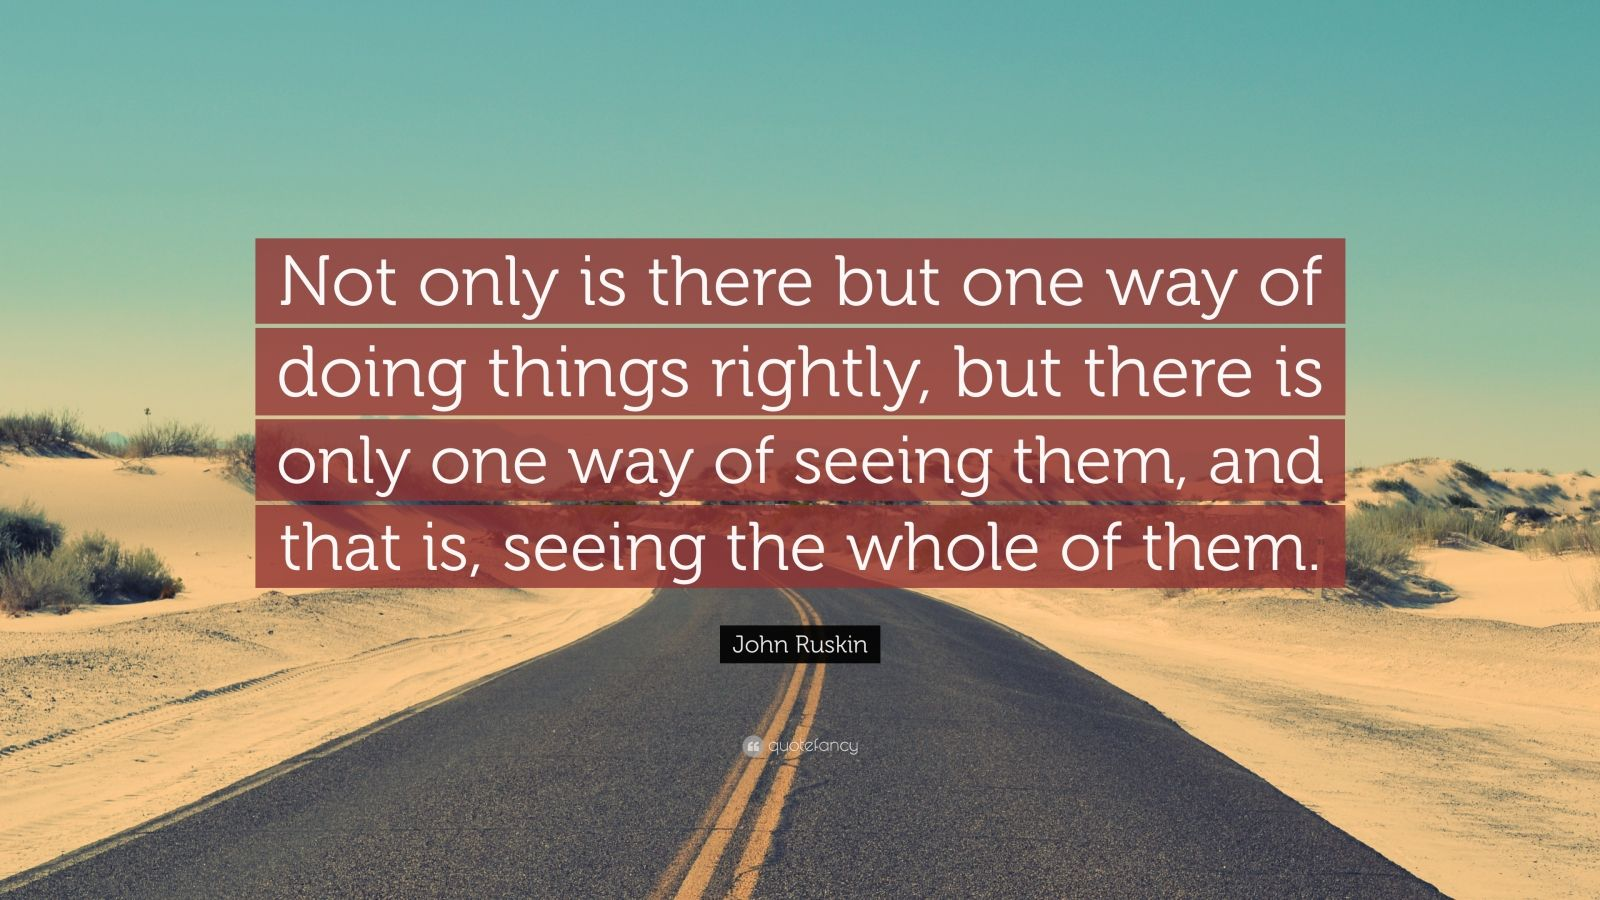 """John Ruskin Quote: """"Not only is there but one way of doing things rightly, but there is only one way of seeing them, and that is, seeing the whole of them."""""""